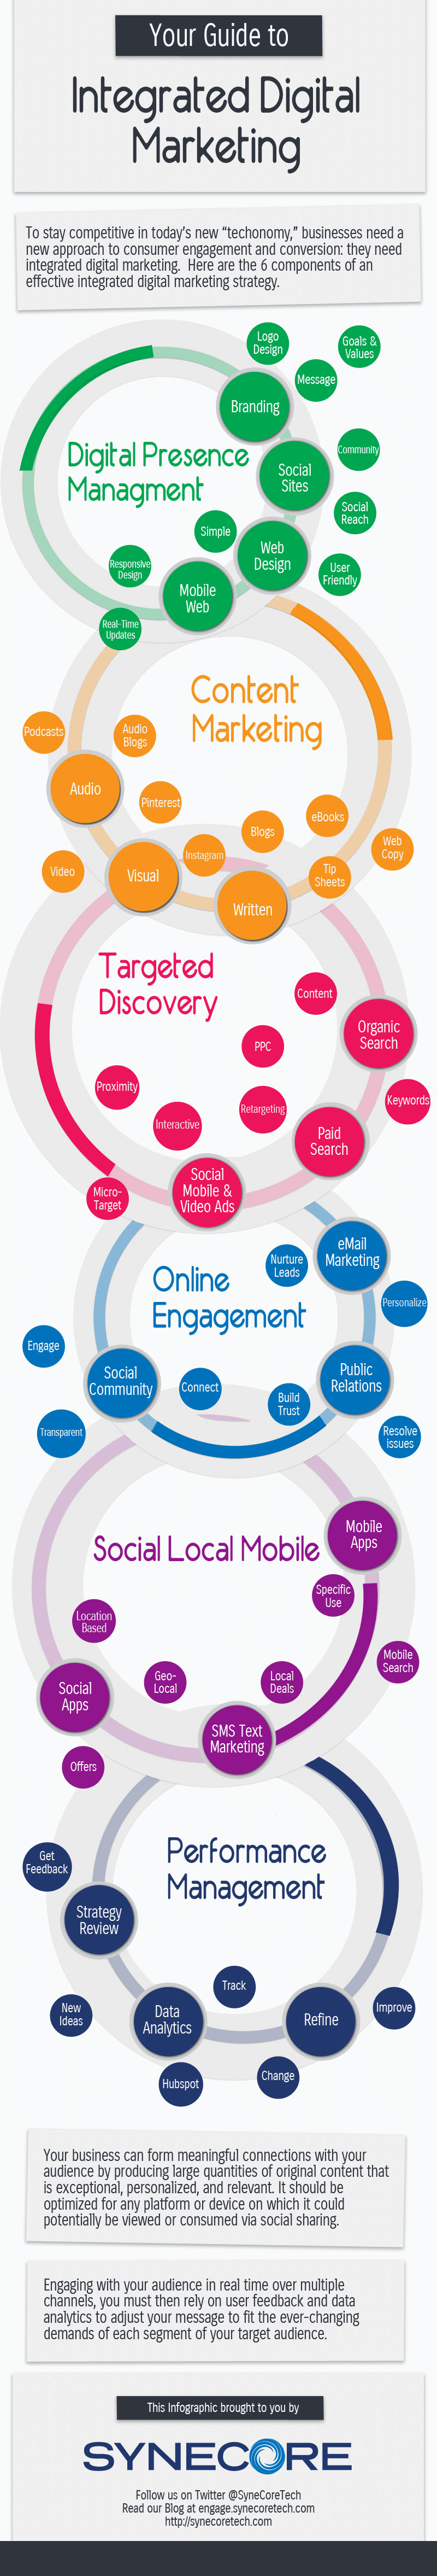 Digital Marketing Overview-Infographic